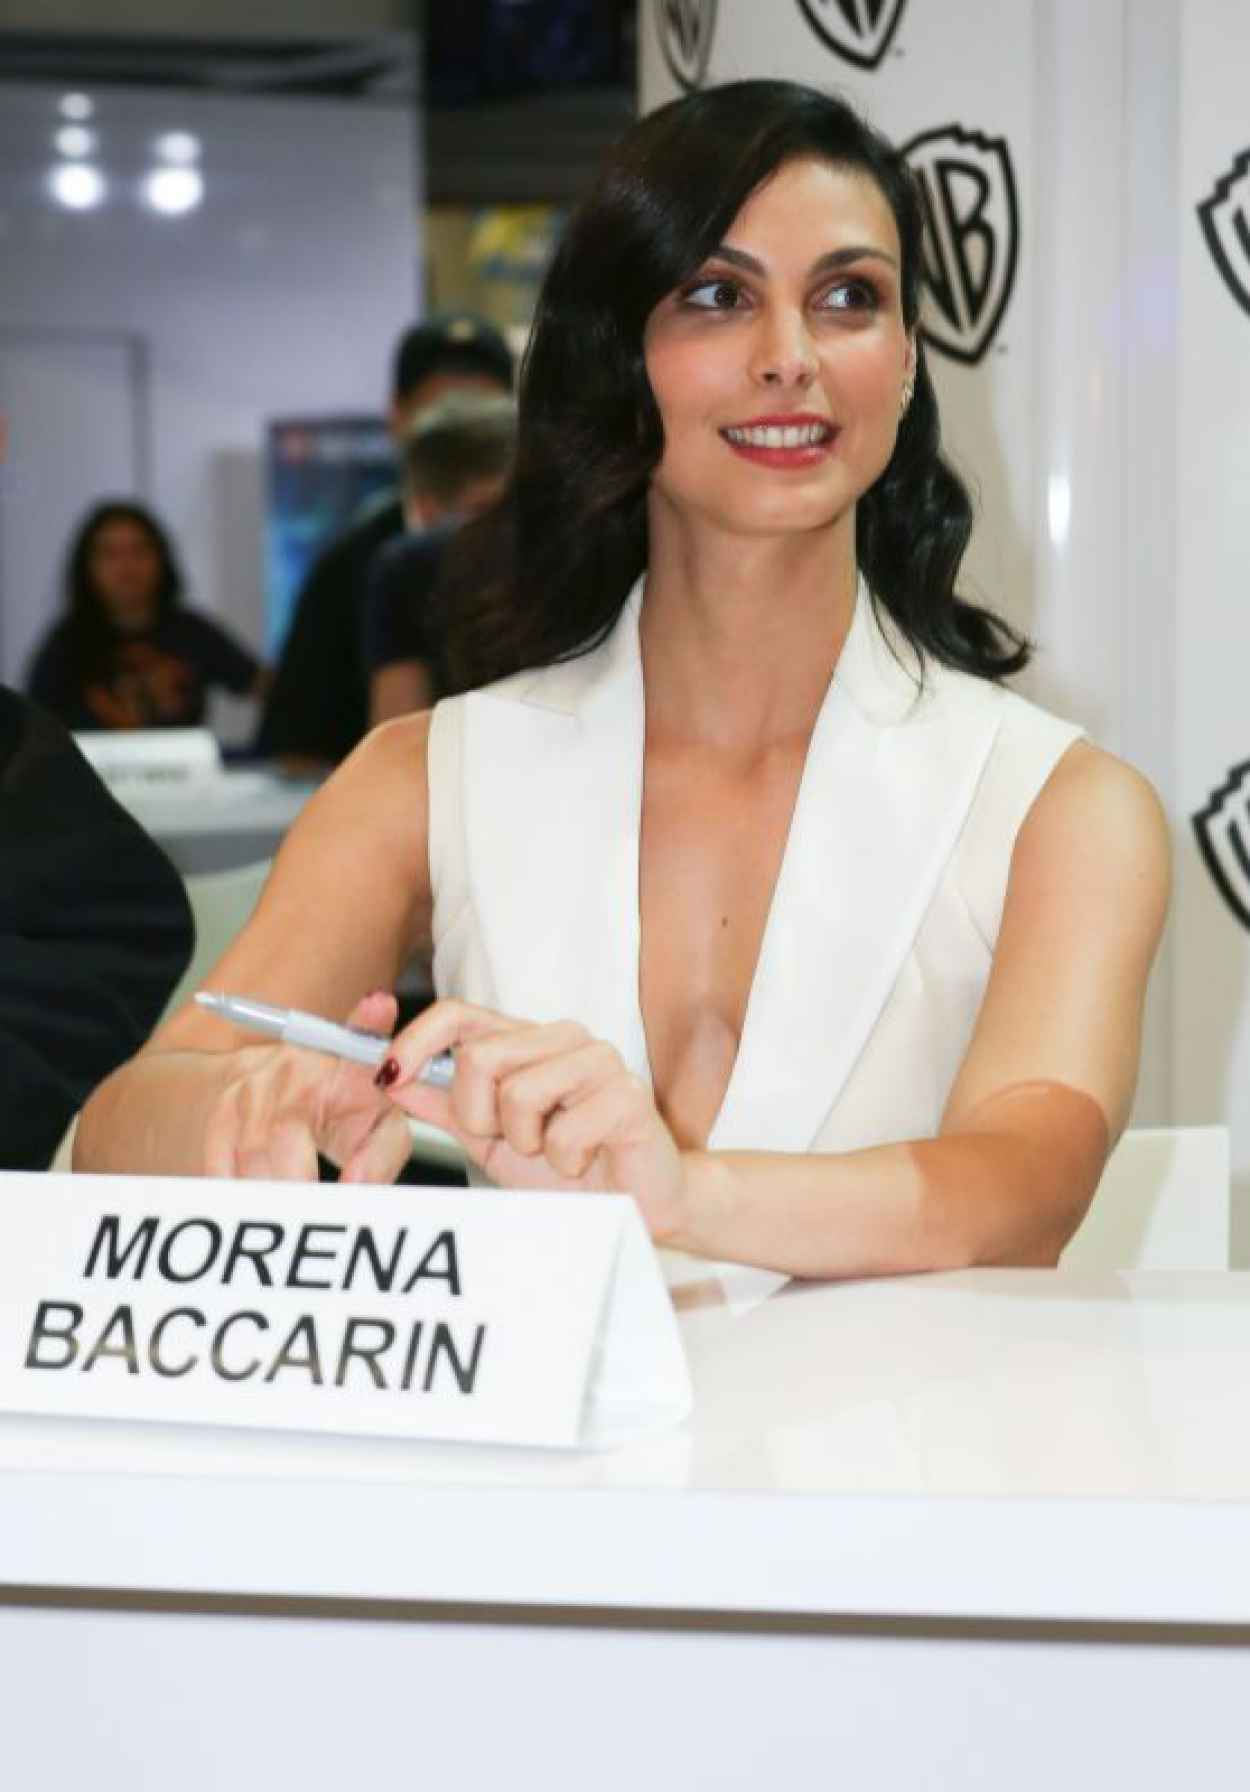 Morena Baccarin - WB Booth at Comic Con in San Diego, July 2015-1